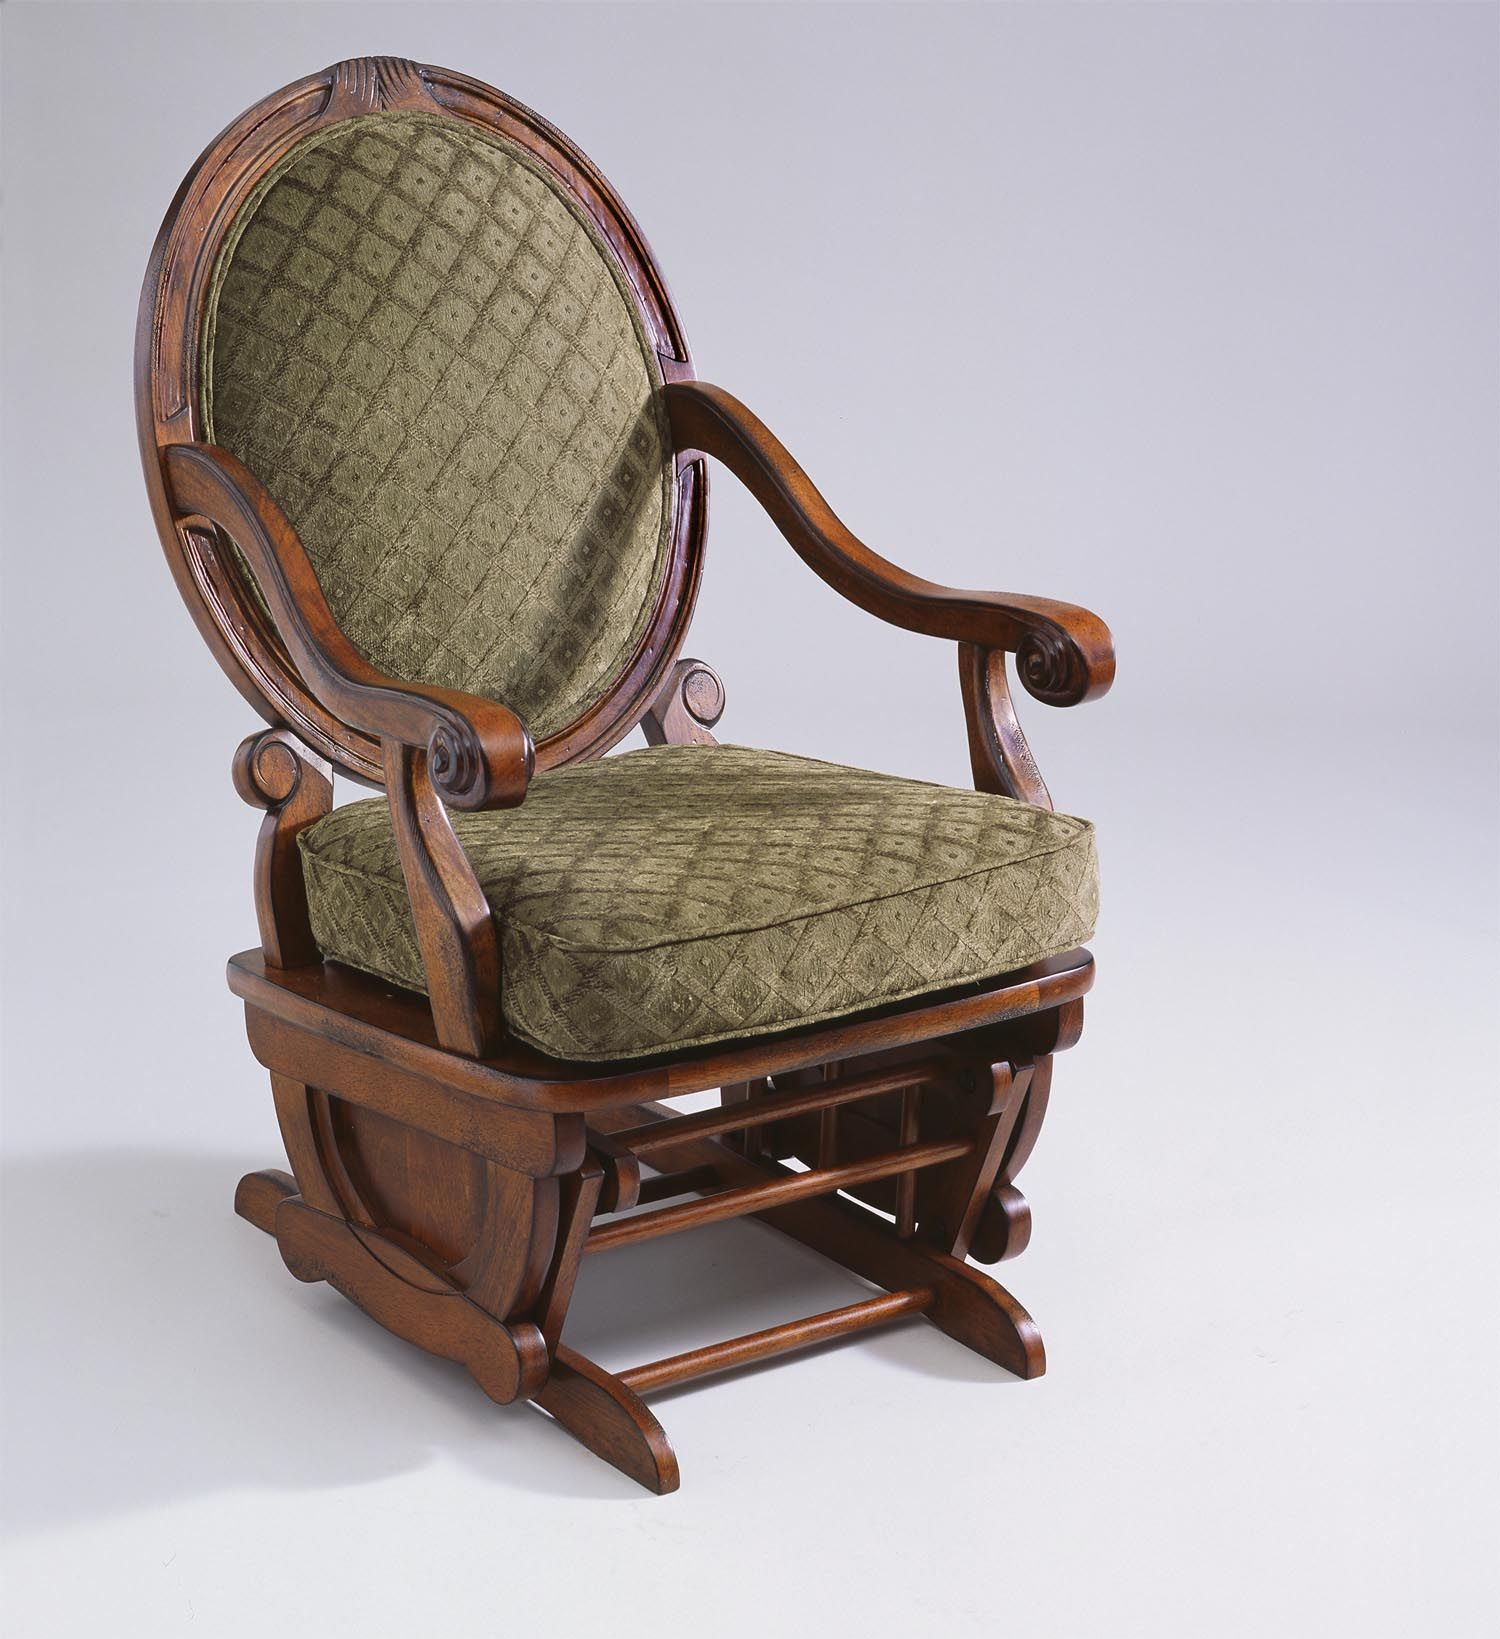 Looking For Rocking Chairs Best Brockly Glider Rocking Chair Jasen 39s Fine